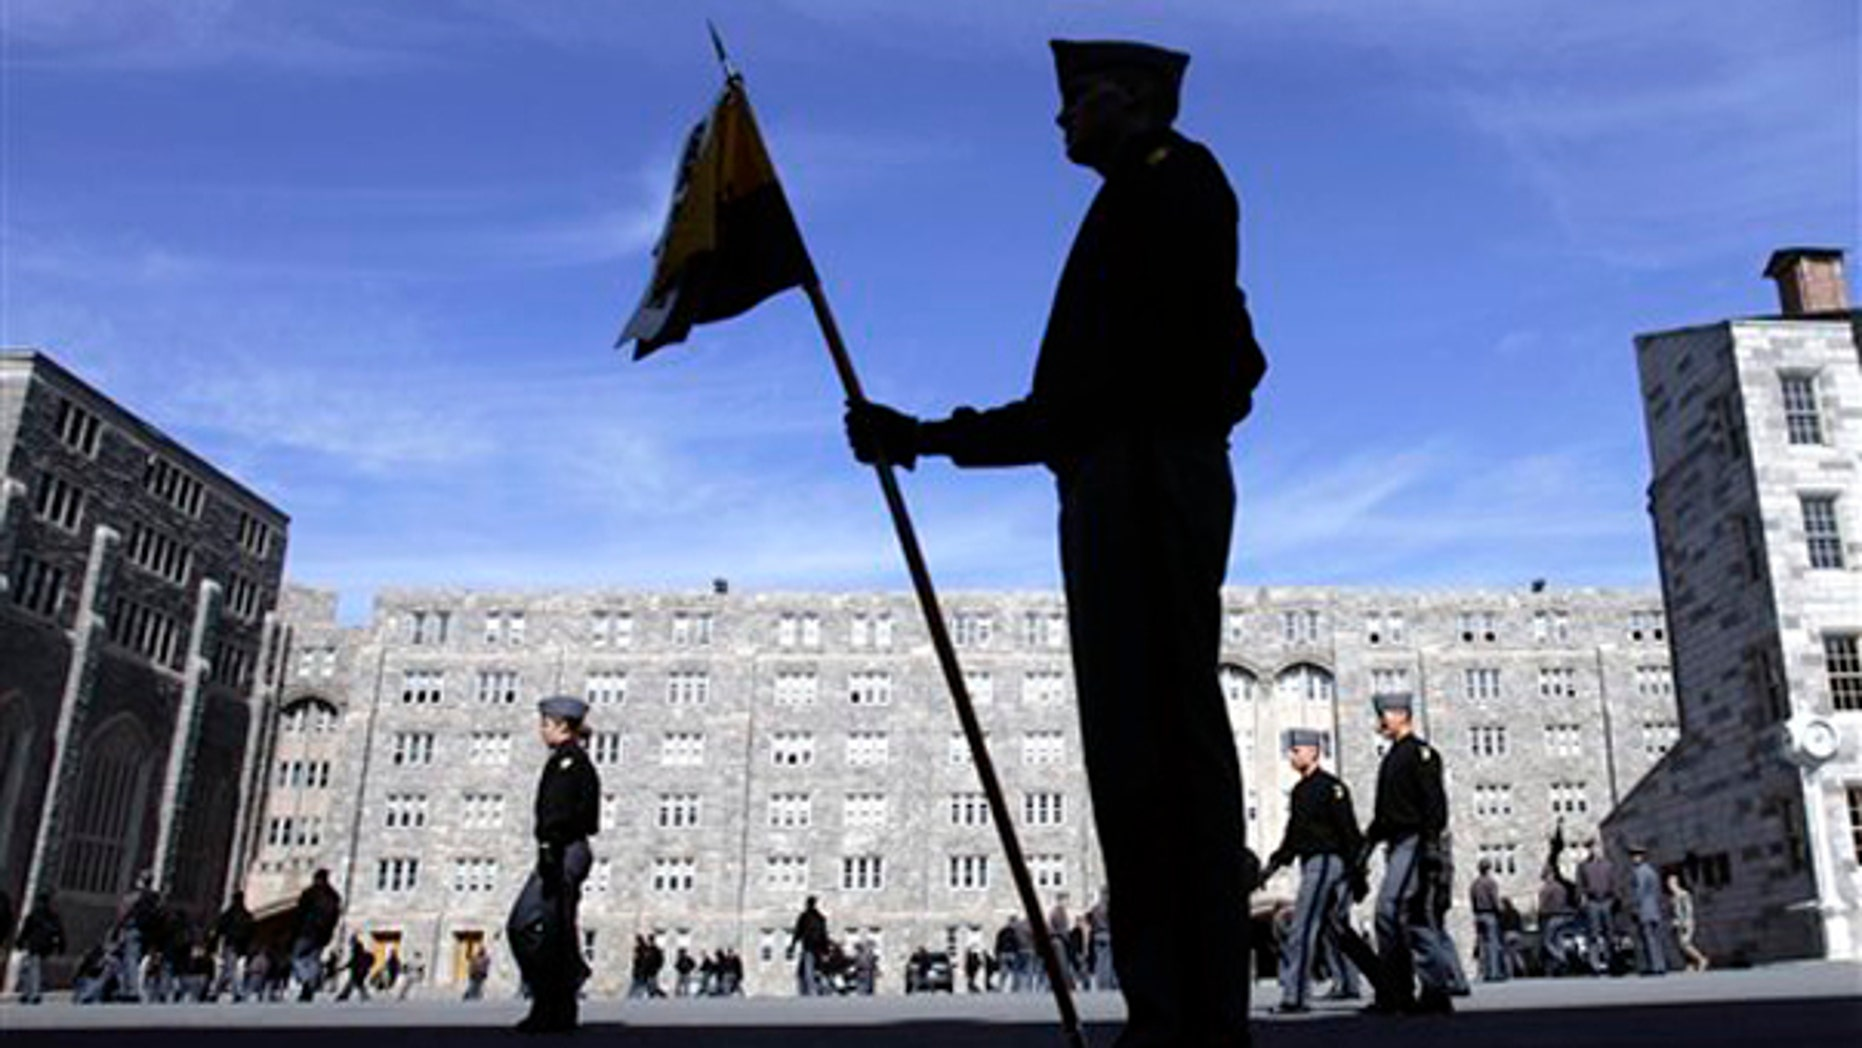 In this March 6, 2008 file photo, cadets prepare to line up for lunch time formation at the United States Military Academy at West Point, N.Y. West Point is being considered as an alternative to lower Manhattan for the Sept. 11 terrorist trial. (AP)